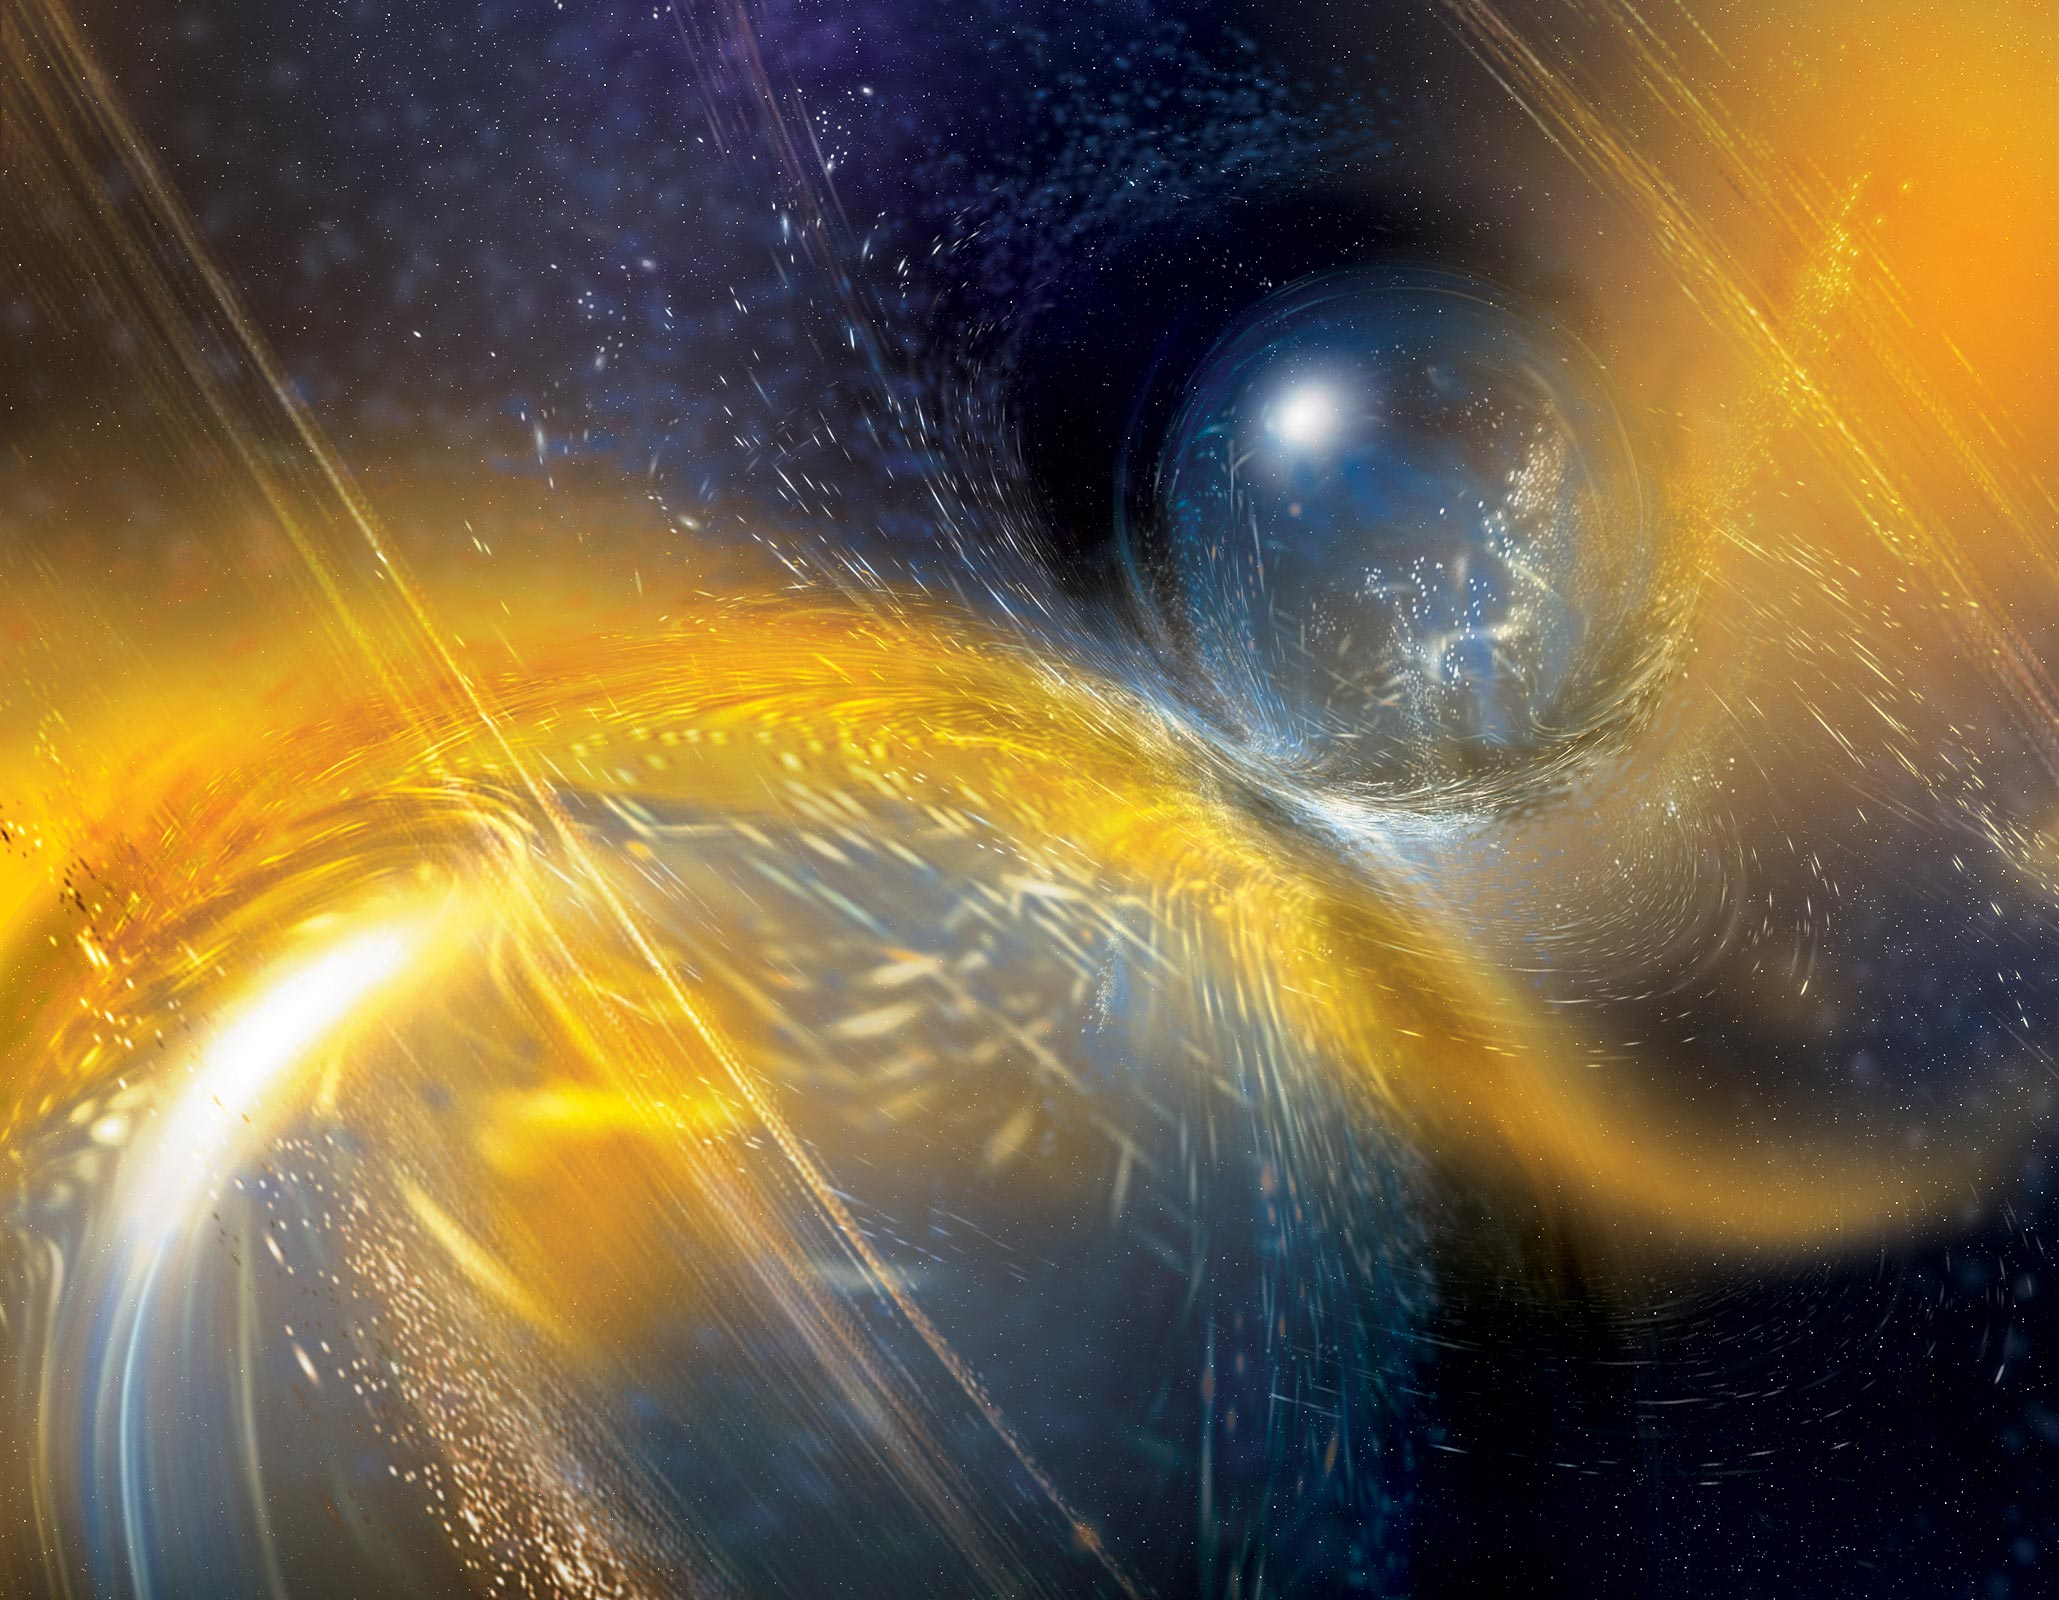 Gravitational Waves Surge Through the Fabric of Space and Time After Neutron Stars Violently Collide - SciTechDaily